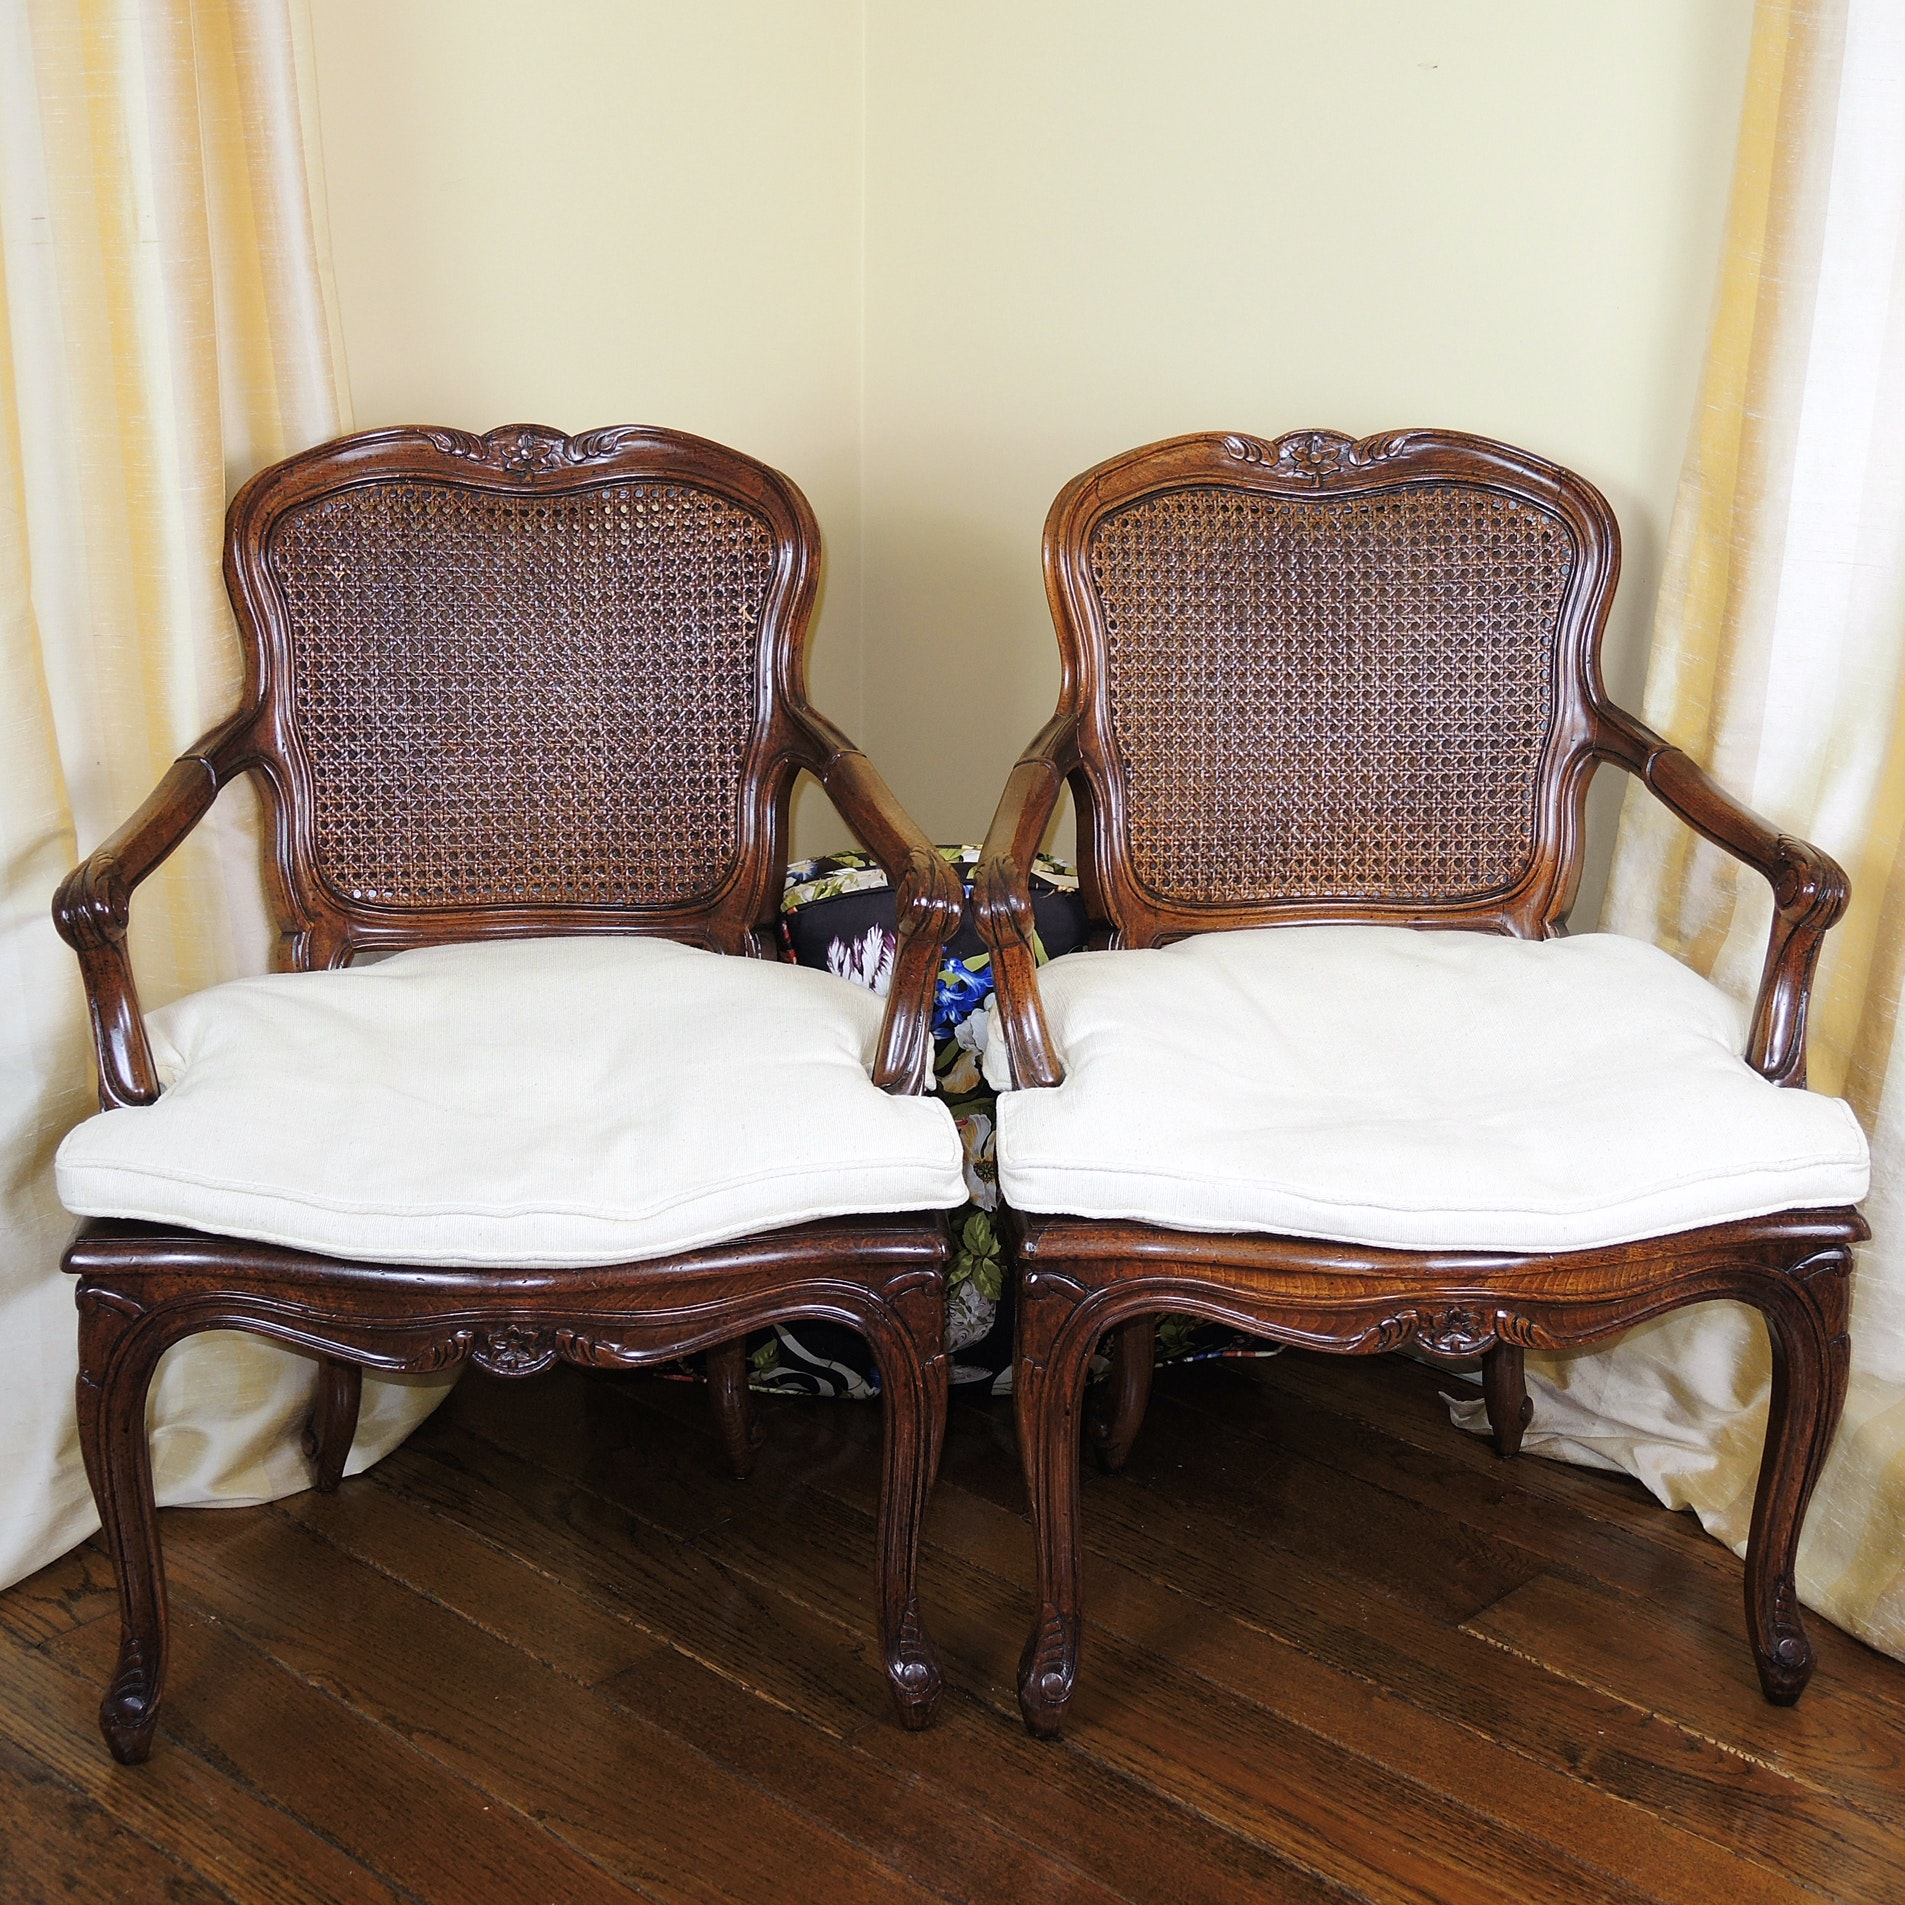 French Provincial Arm Chairs with Interchangeable Cushions